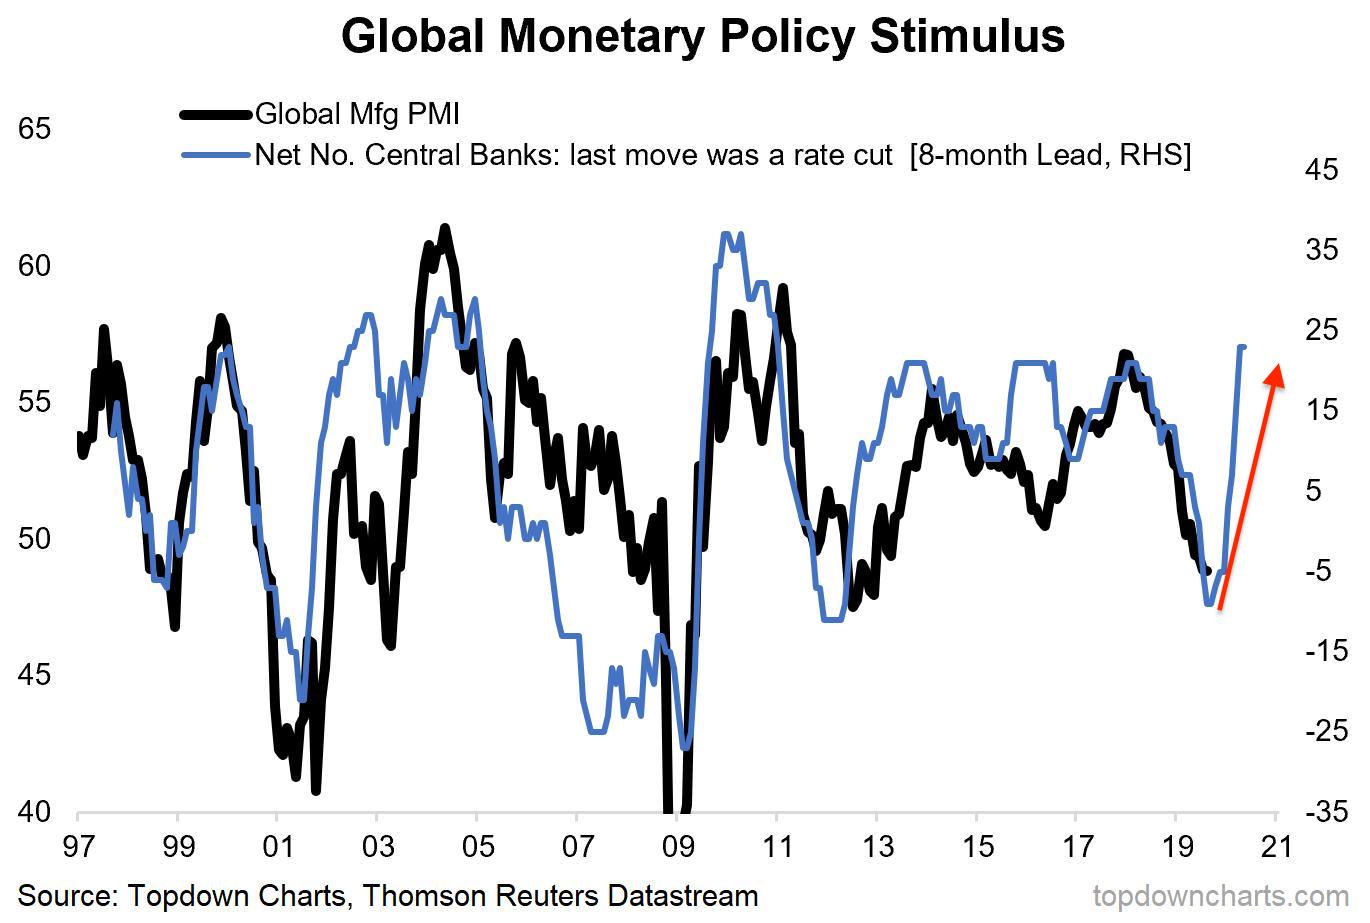 Central Bank monetary policy influences Global PMI